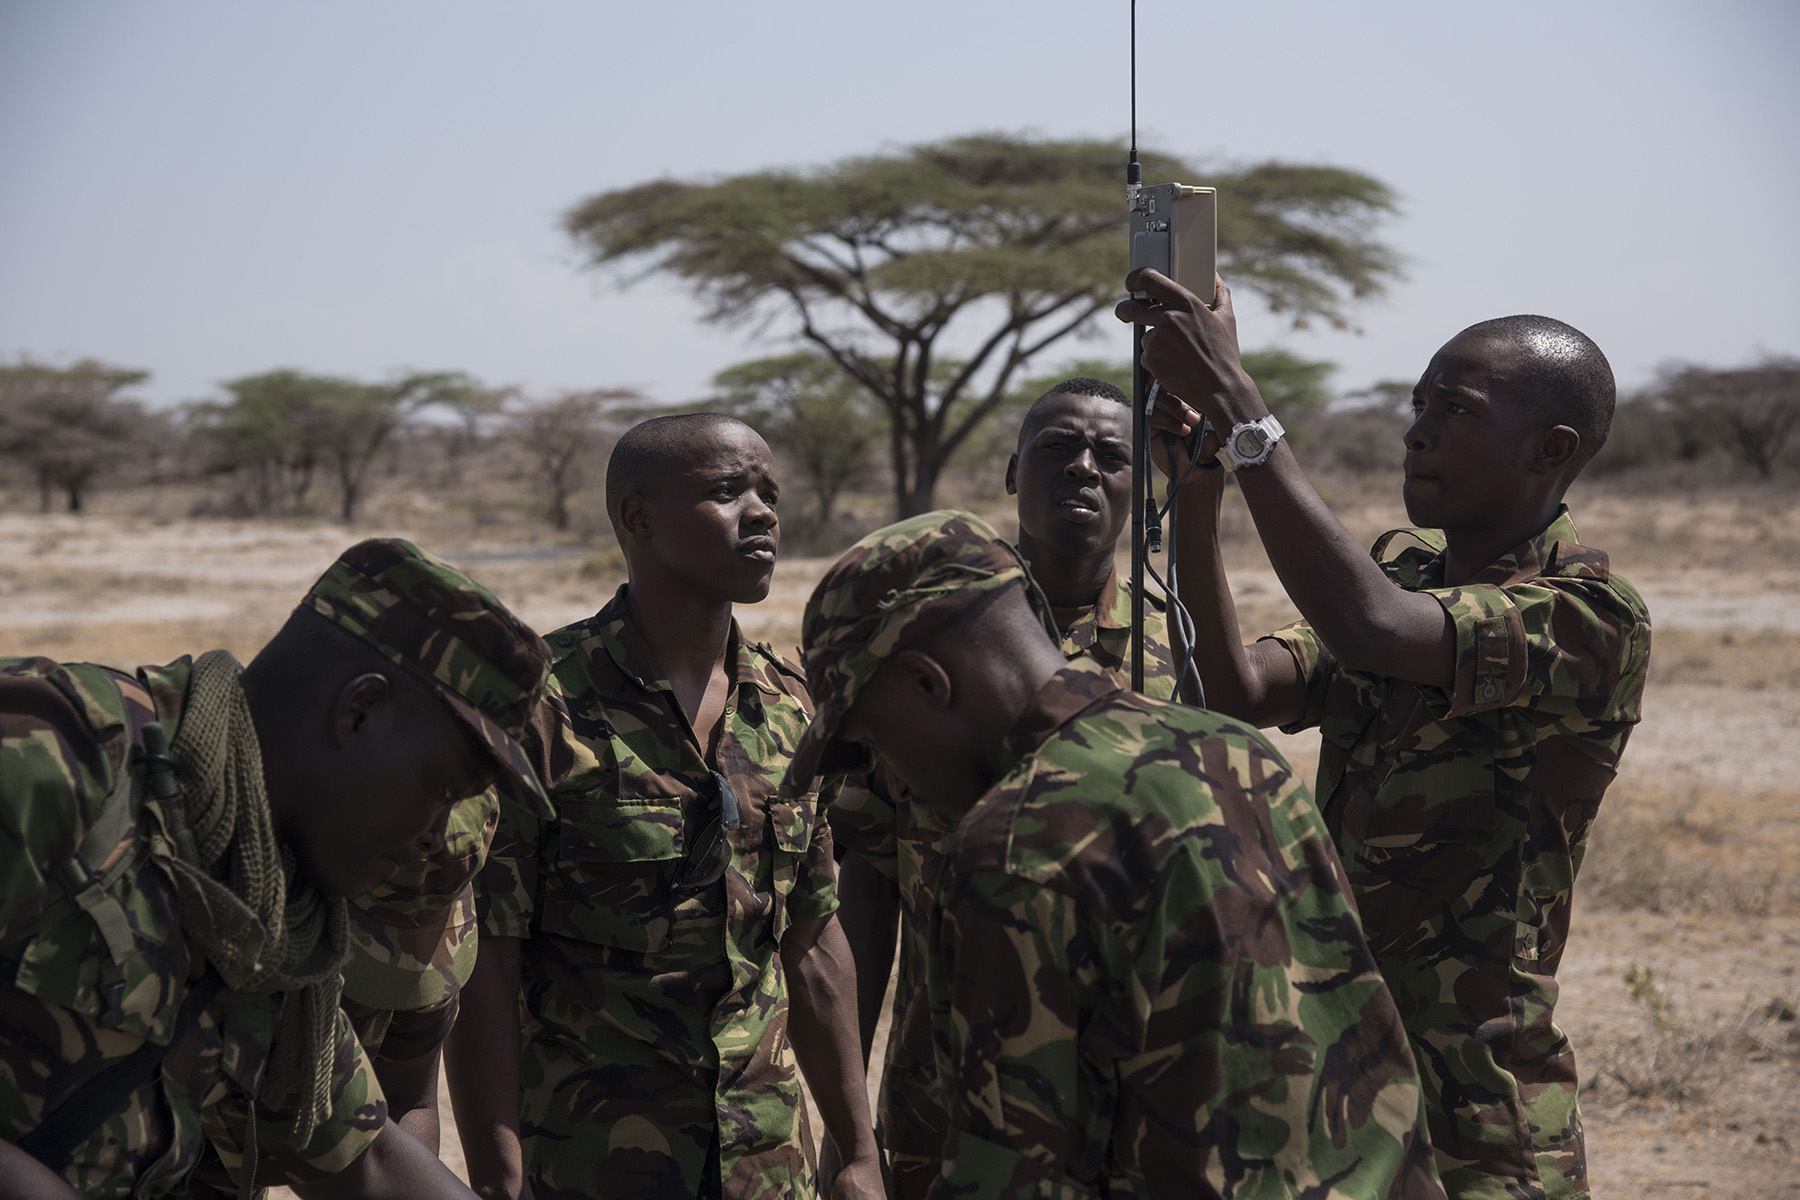 Members of the Kenya Defense Forces Military Intelligence Battalion set up the computer system and AeroVironment RQ-11 Raven, an unmanned aerial vehicle, for the flying lesson portion of training, Sept. 13, 2016, at a Kenyan training facility. Members of the 1st Battalion, 124th Infantry Regiment, assigned to Combined Joint Task Force-Horn of Africa, provided the KDF training on the Raven for employment in future real world situations. (U.S. Air Force photo by Staff Sgt. Tiffany DeNault)